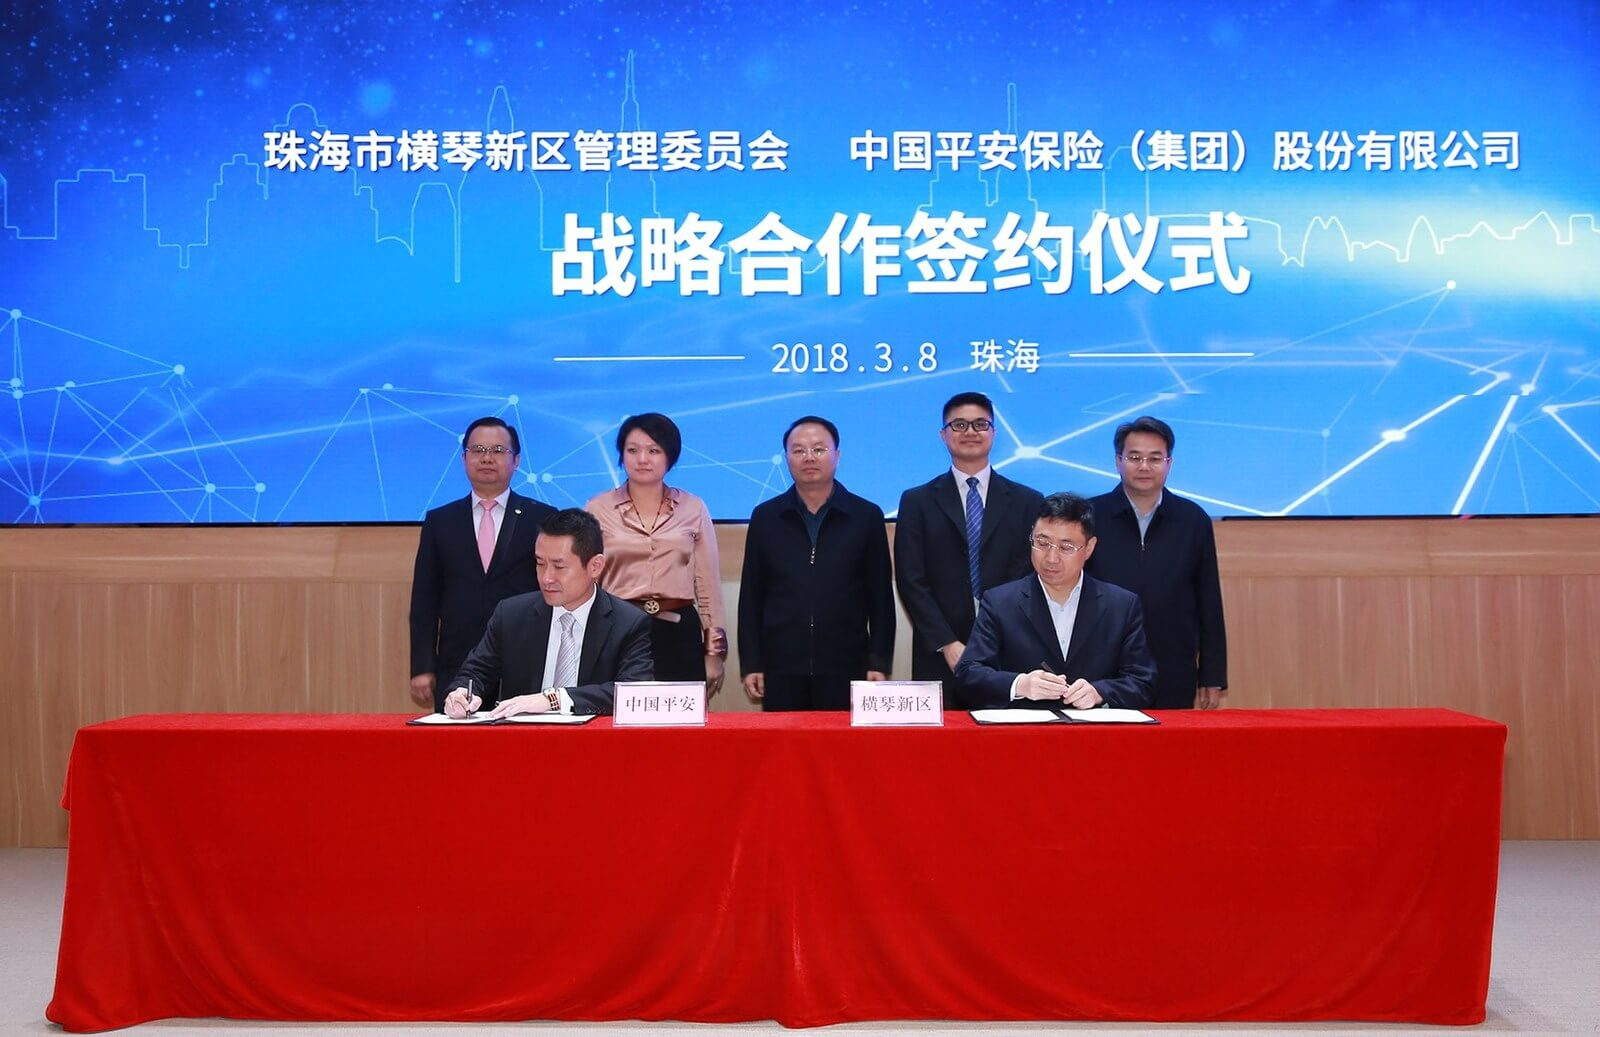 Ericson Chan, CEO of Ping An Technology, inked the agreement with the representative of Hengqin New District.